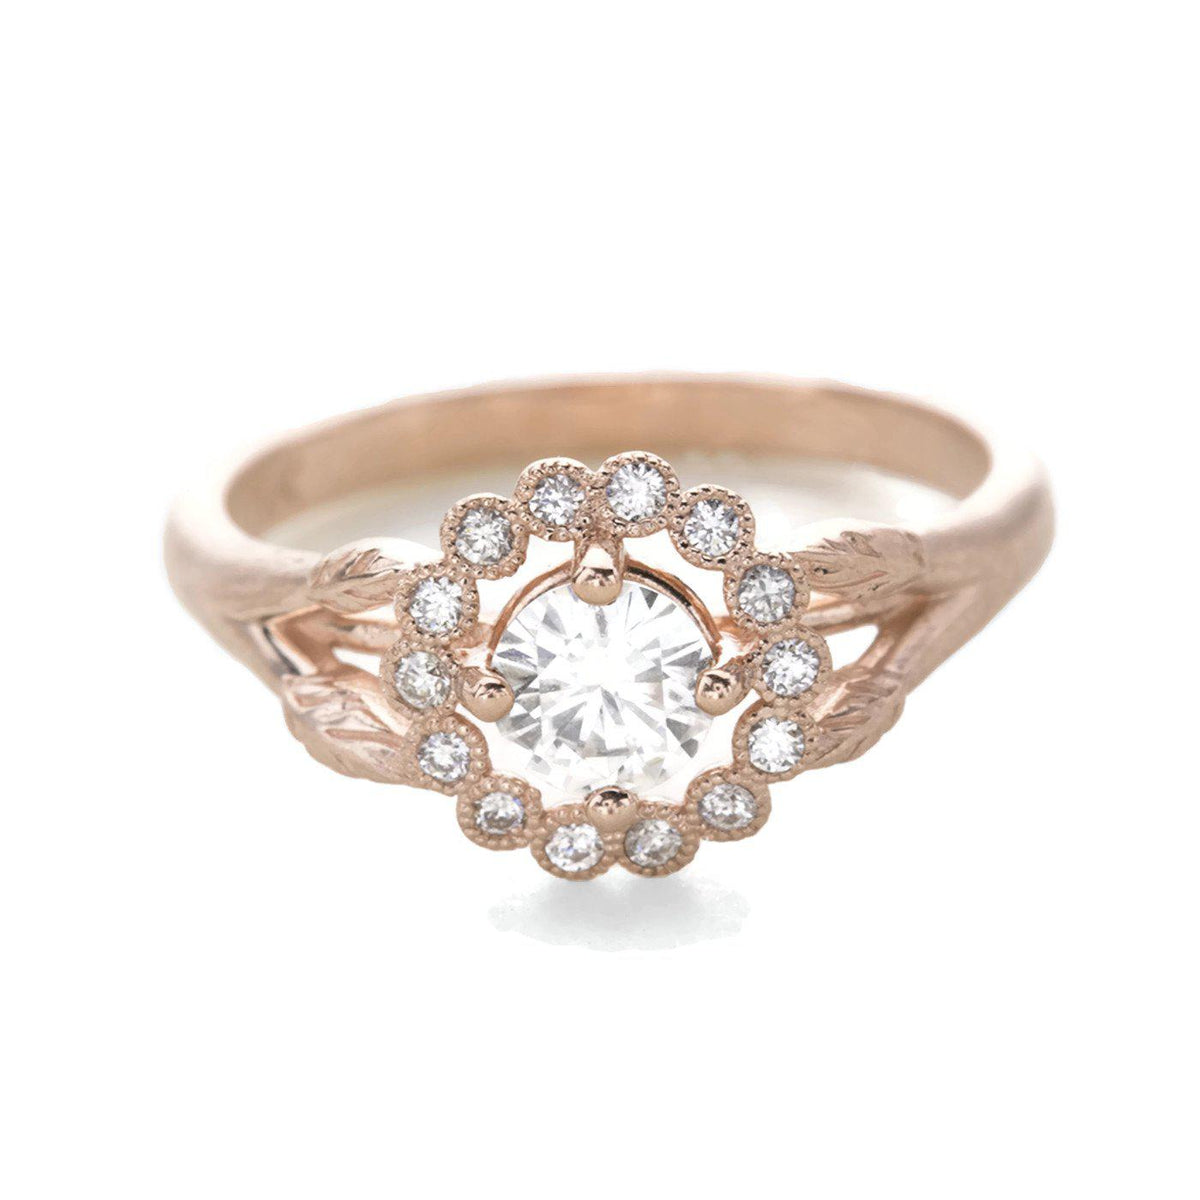 Gwendolyn Diamond Halo Ring 14k Rose Gold